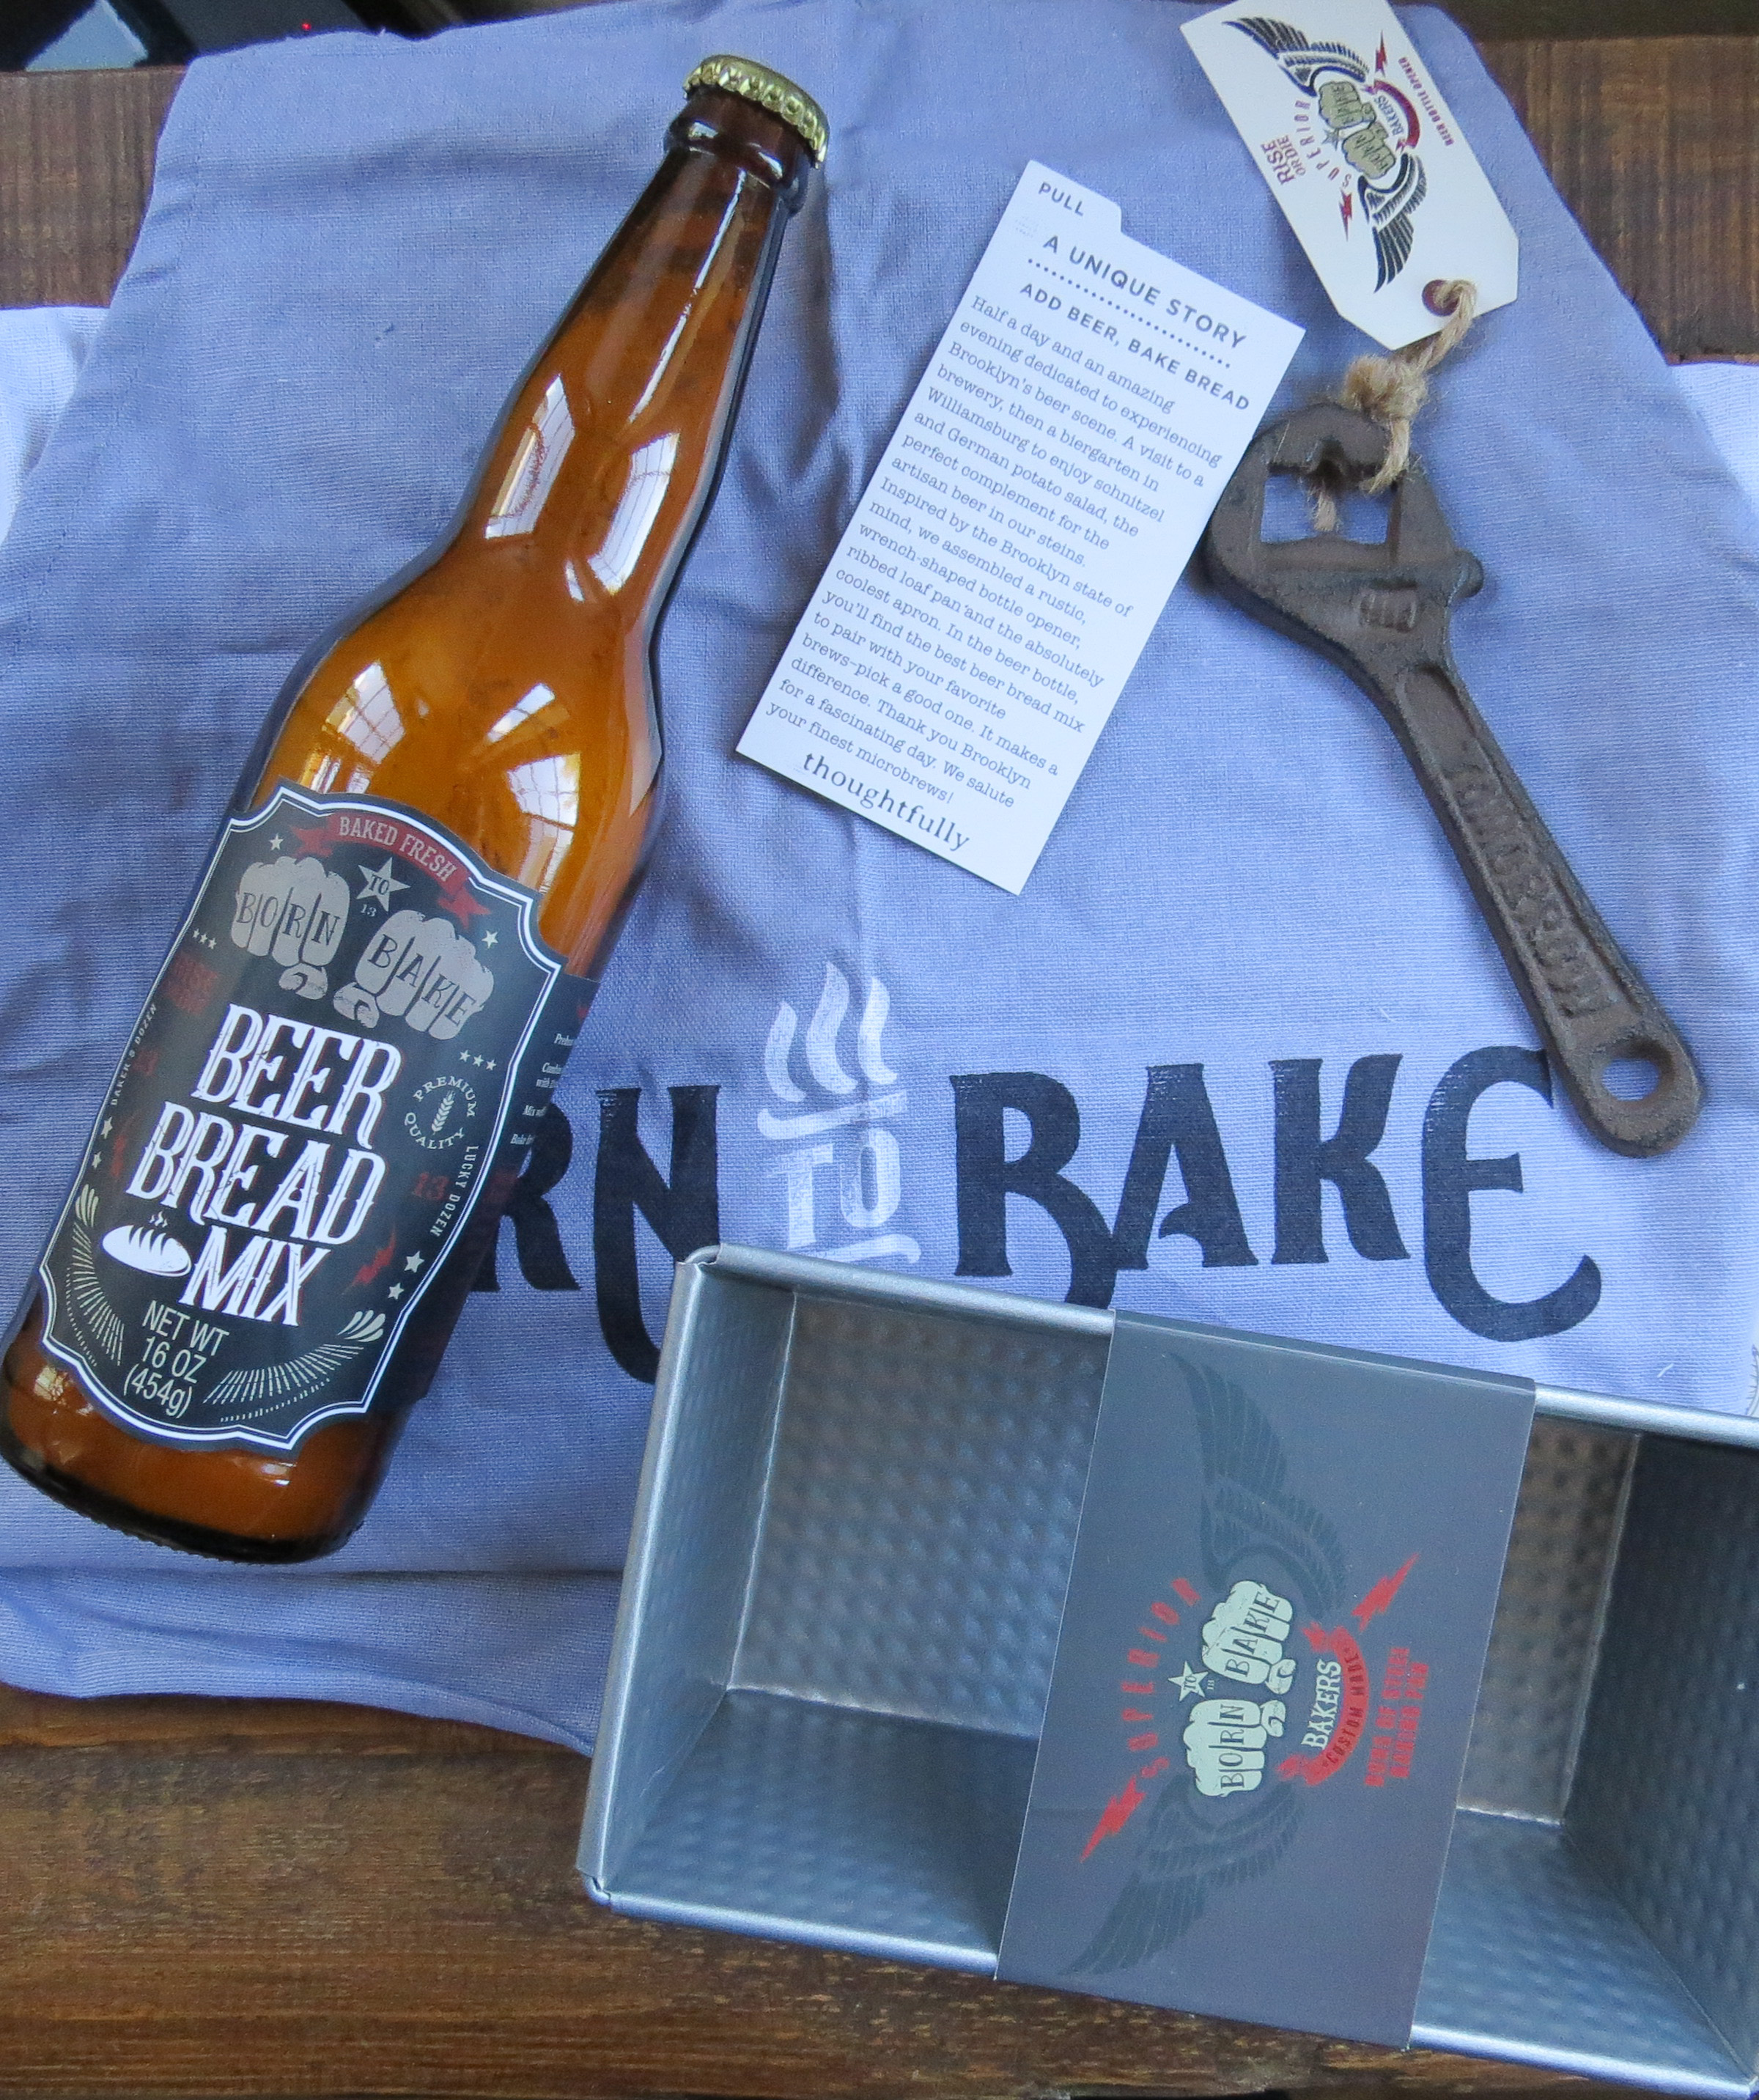 Thoughtfully Gifting add beer, bake bread A Beer Bread Lover's Gift Set on sale!